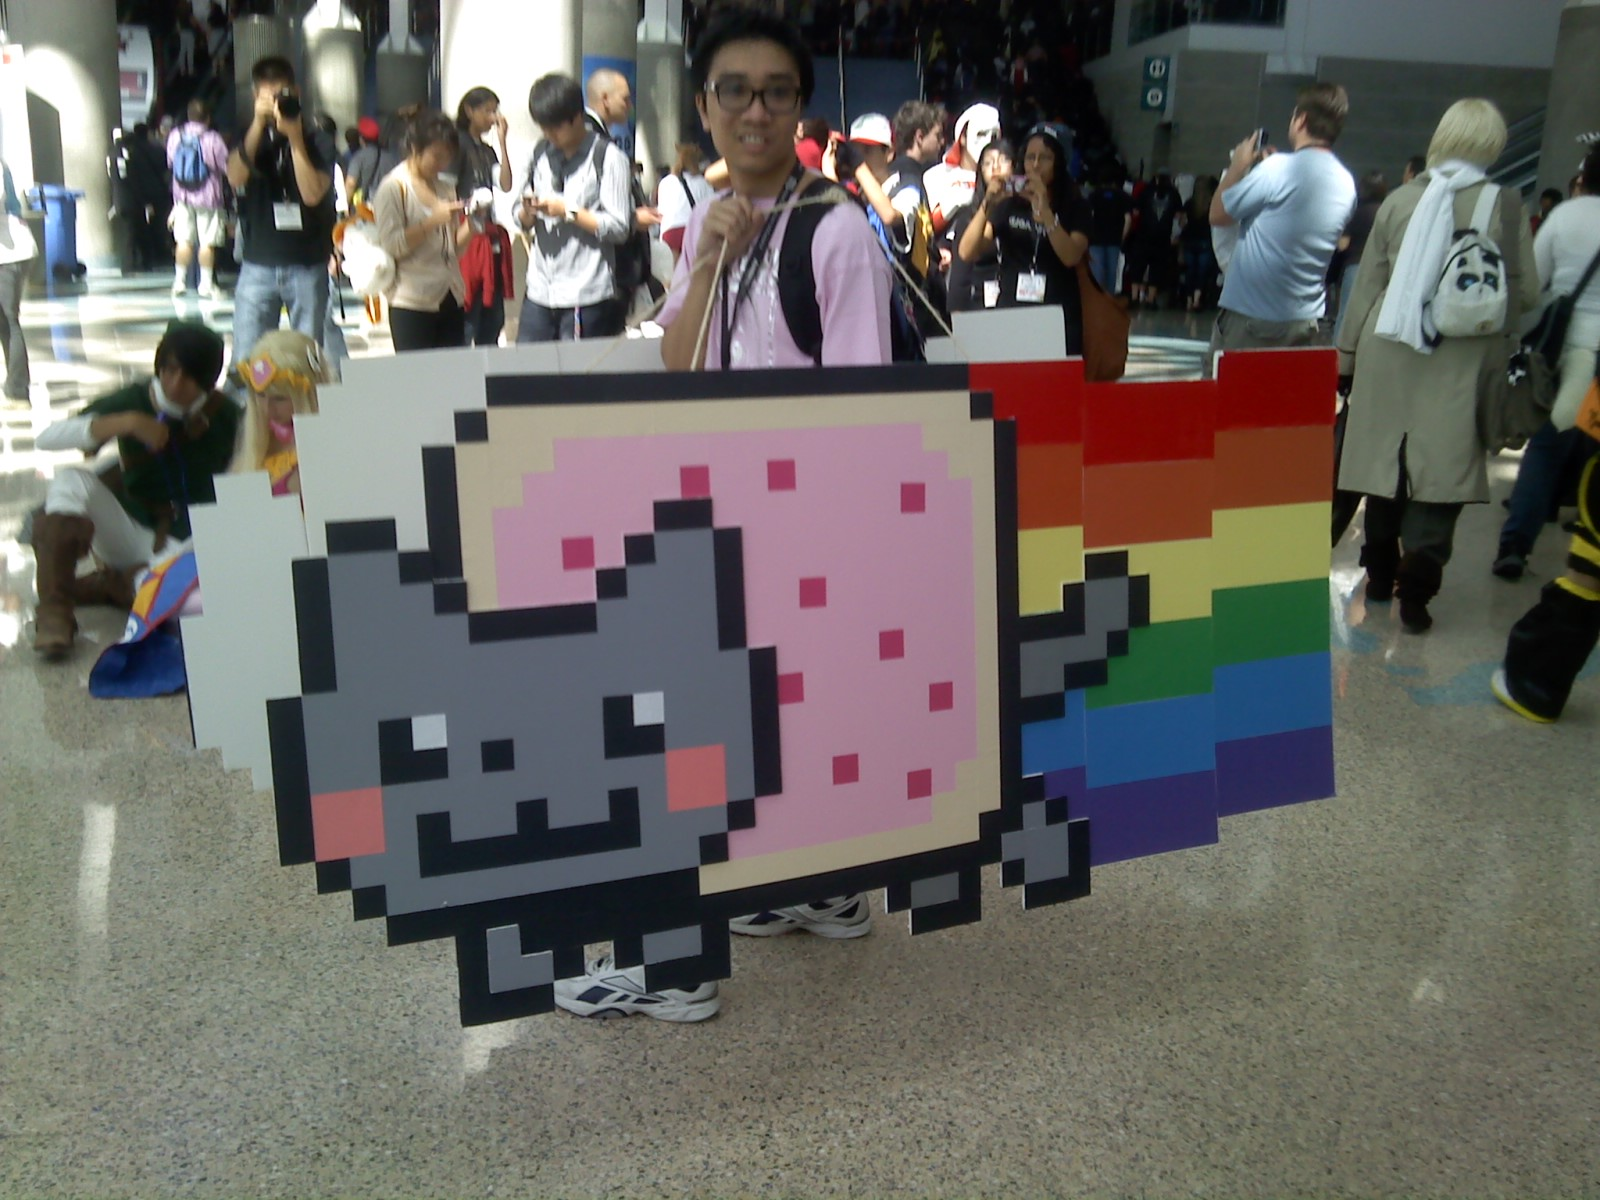 Nyan cat cosplay by TheAwesomeNordics